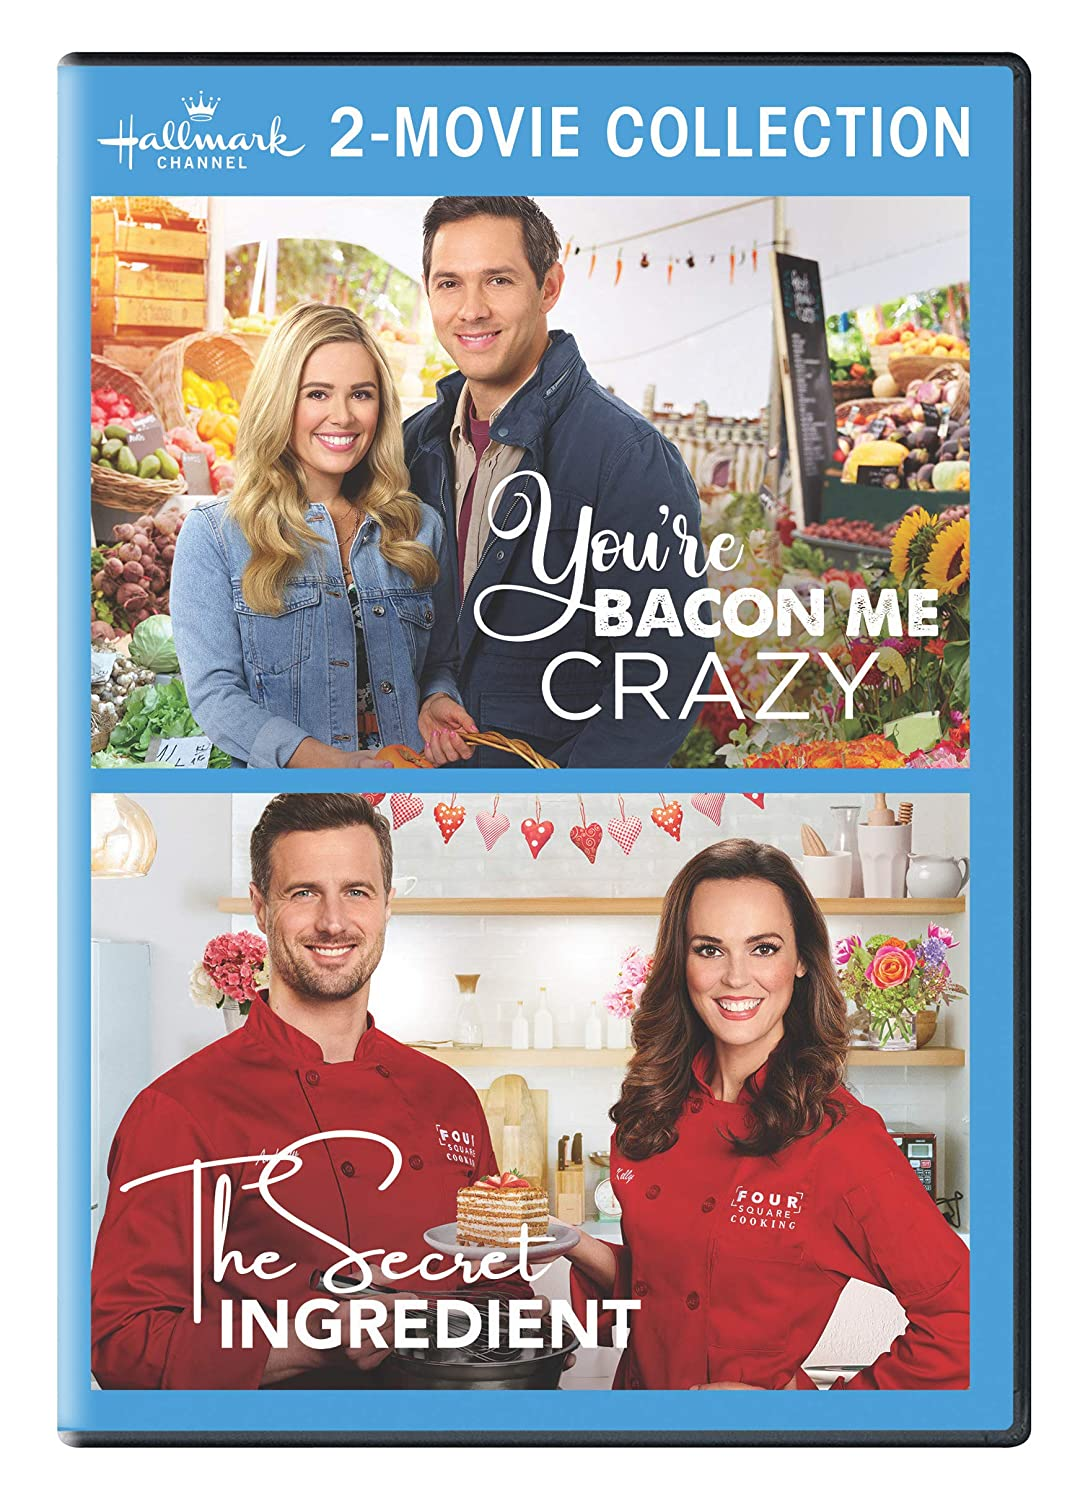 Hallmark 2-Movie Collection: You're Bacon Me Crazy/The Secret Ingredient